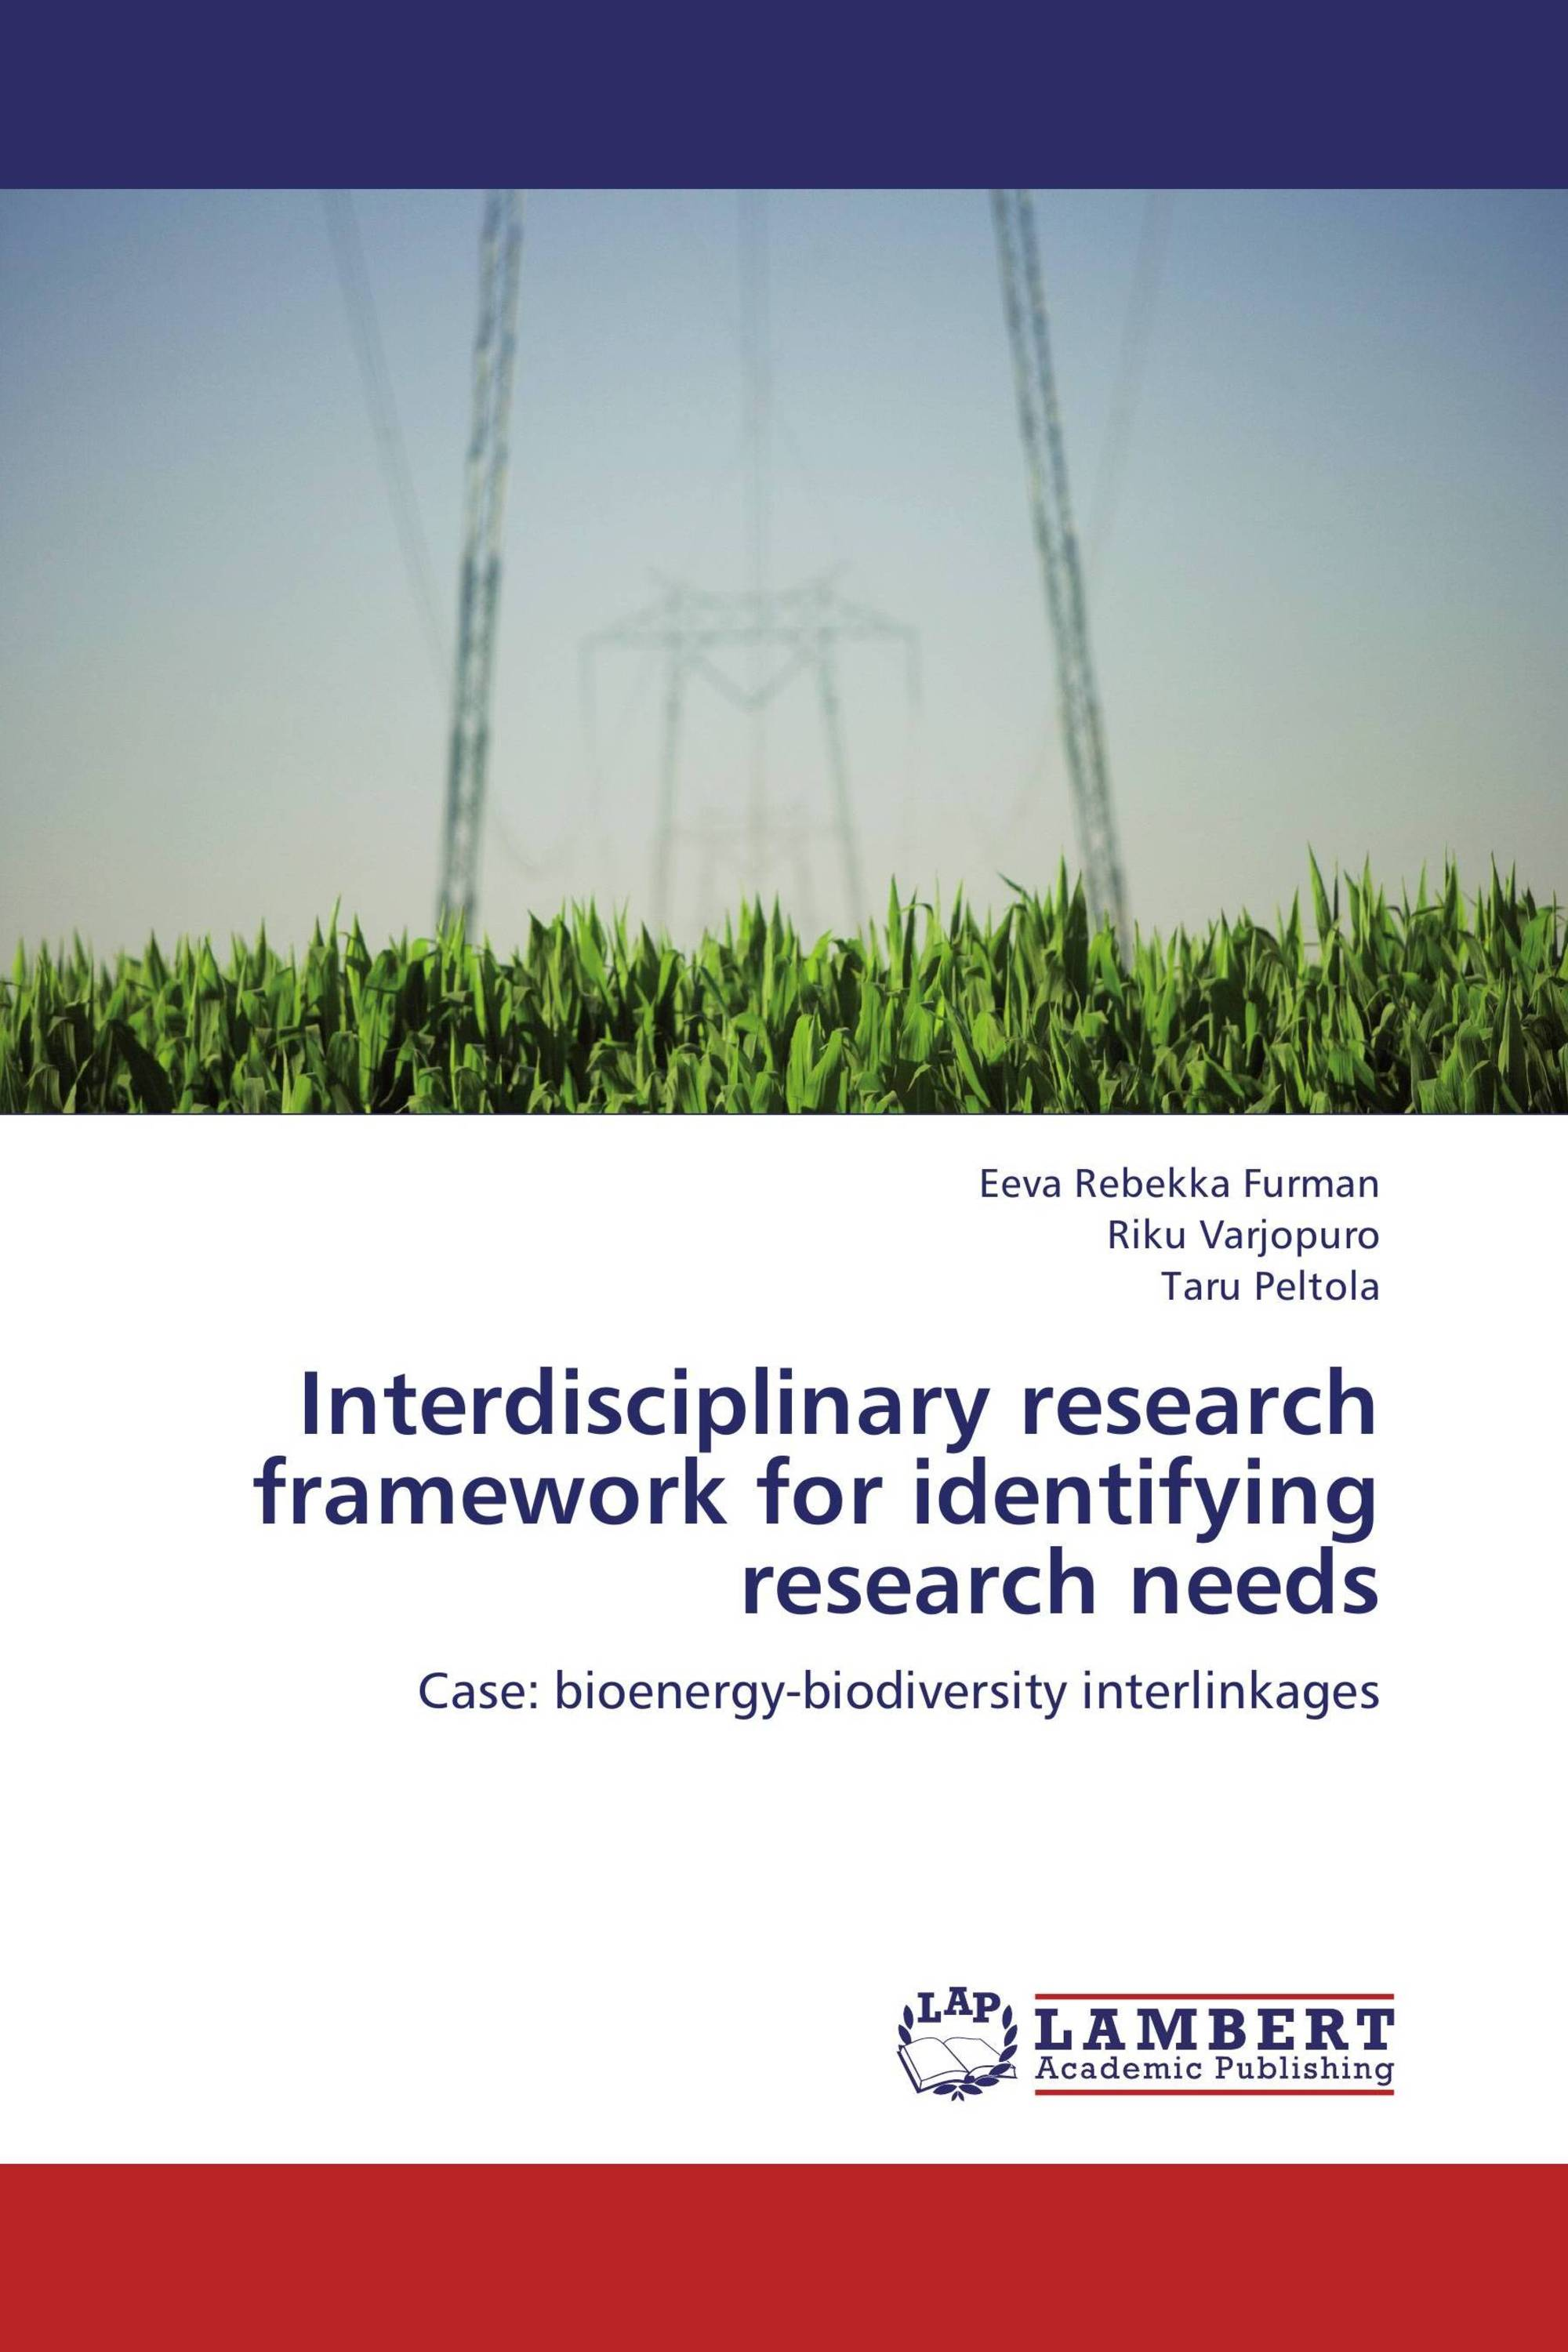 Interdisciplinary research framework for identifying research needs